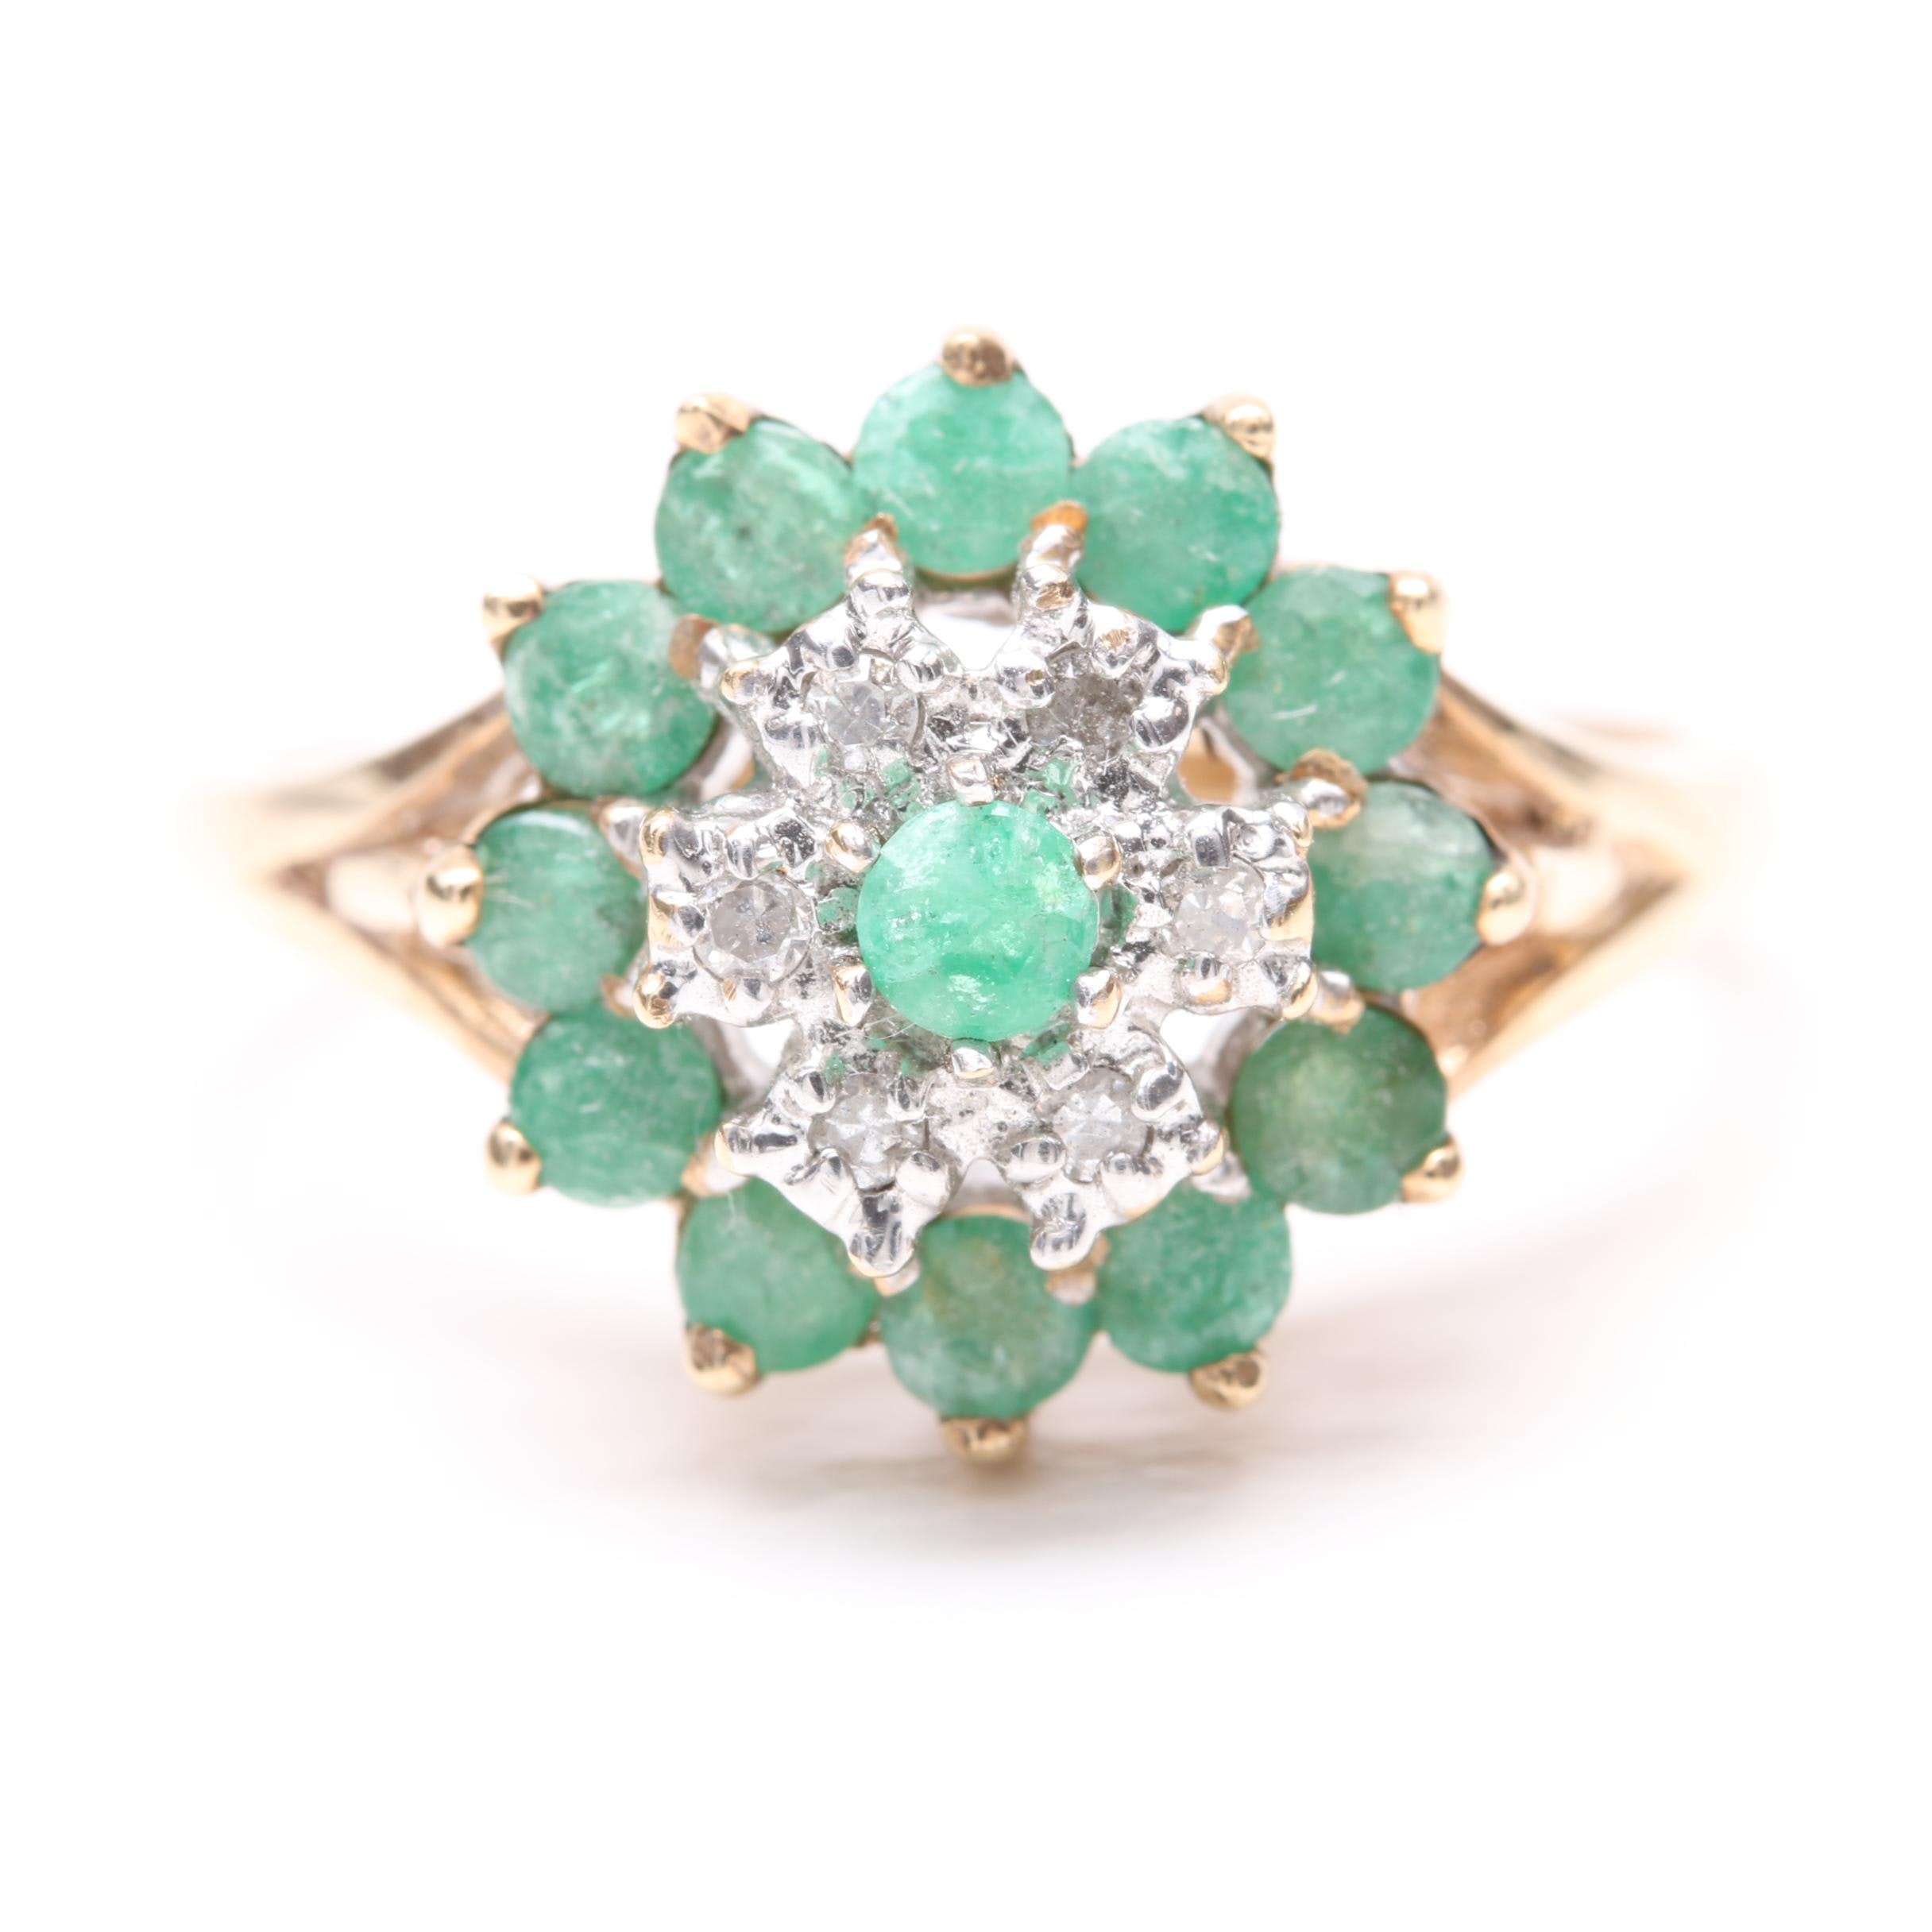 14K Yellow Gold Emerald and Diamond Ring with 14K White Gold Accents